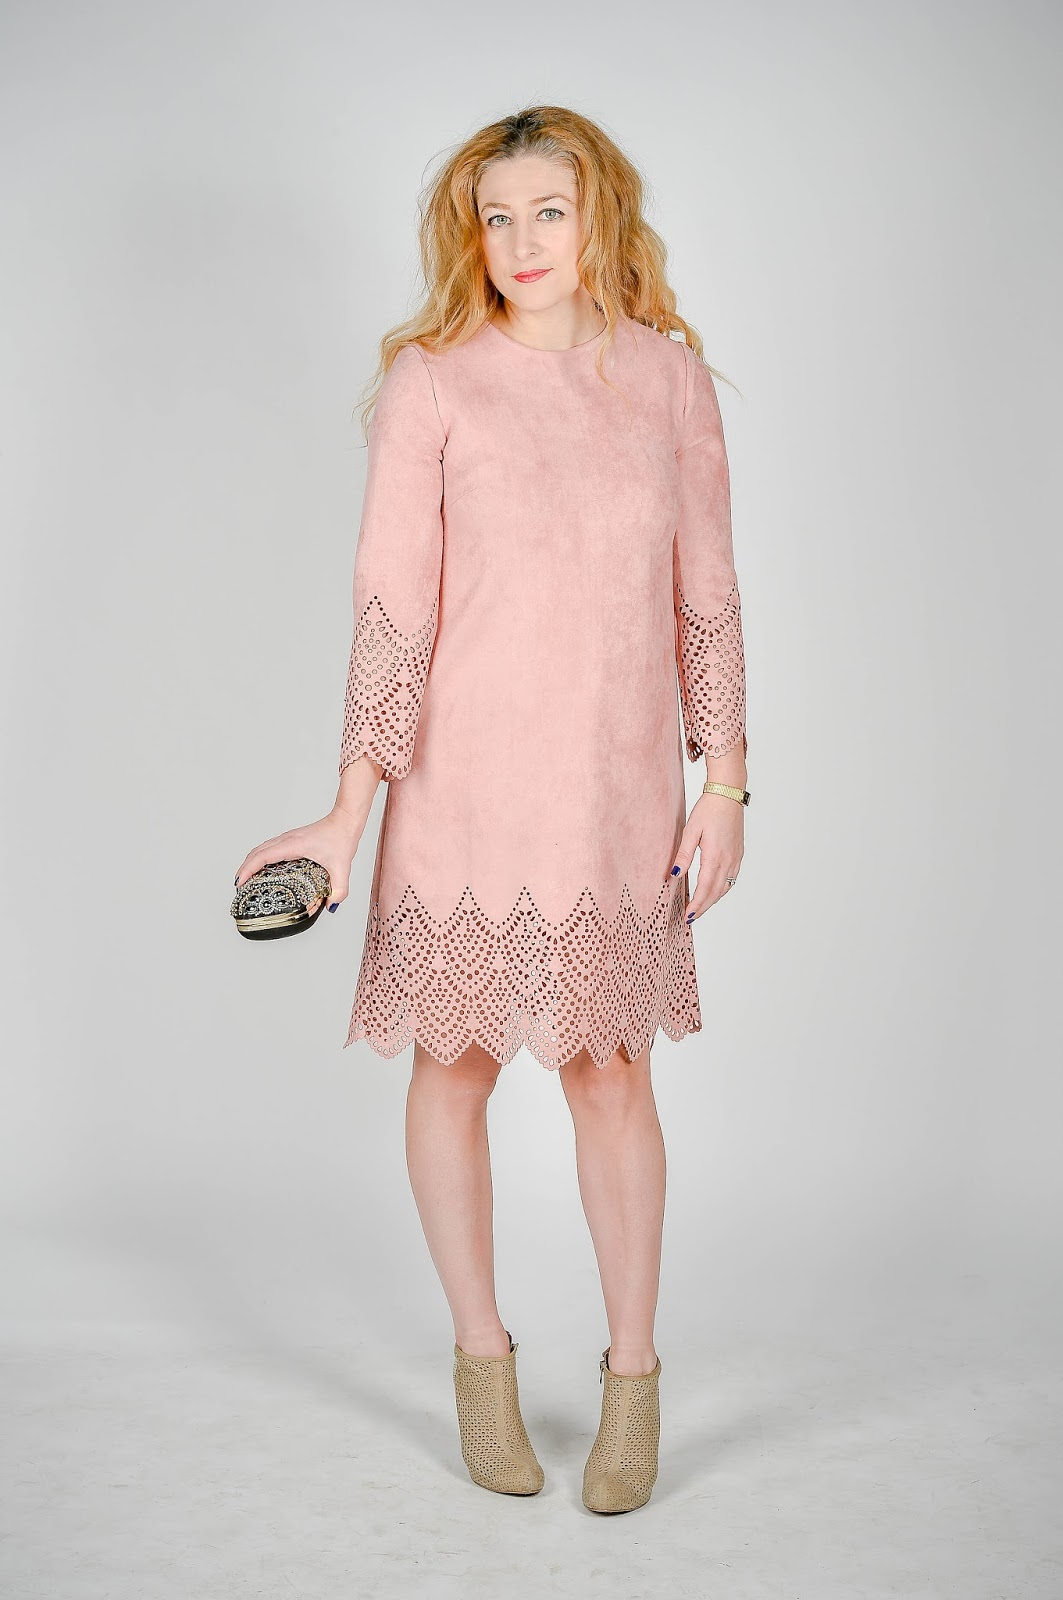 eyelet trimmed hemline dress